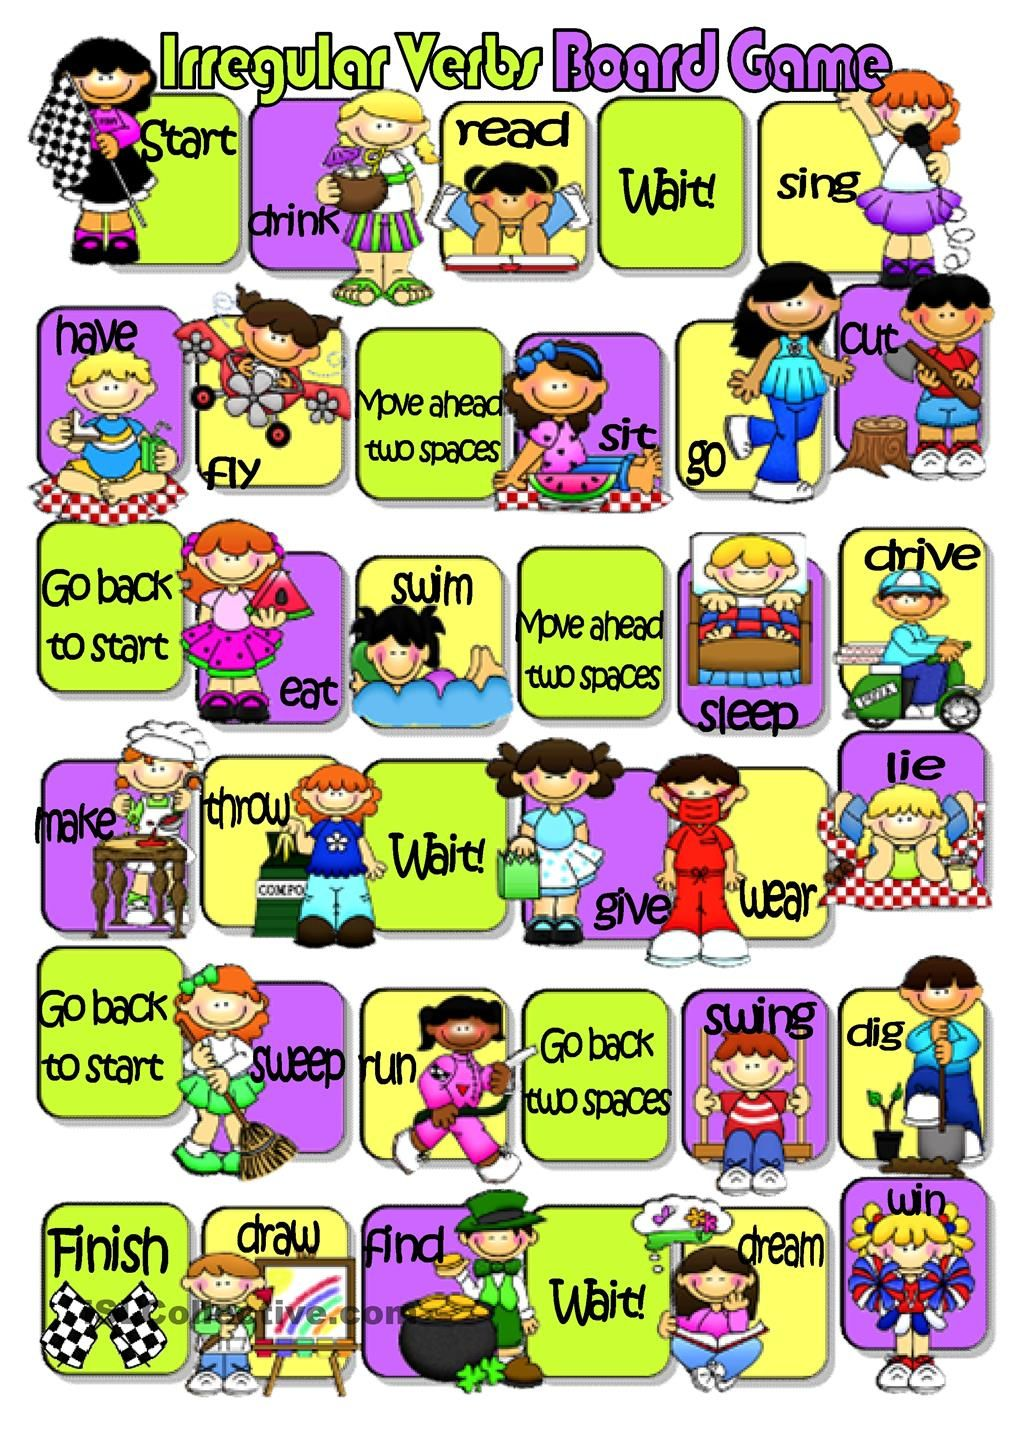 Irregular Verbs Board Game  verbs  Pinterest  Student-centered  grade worksheets, math worksheets, alphabet worksheets, free worksheets, and education French Regular Verbs Worksheet 1440 x 1018